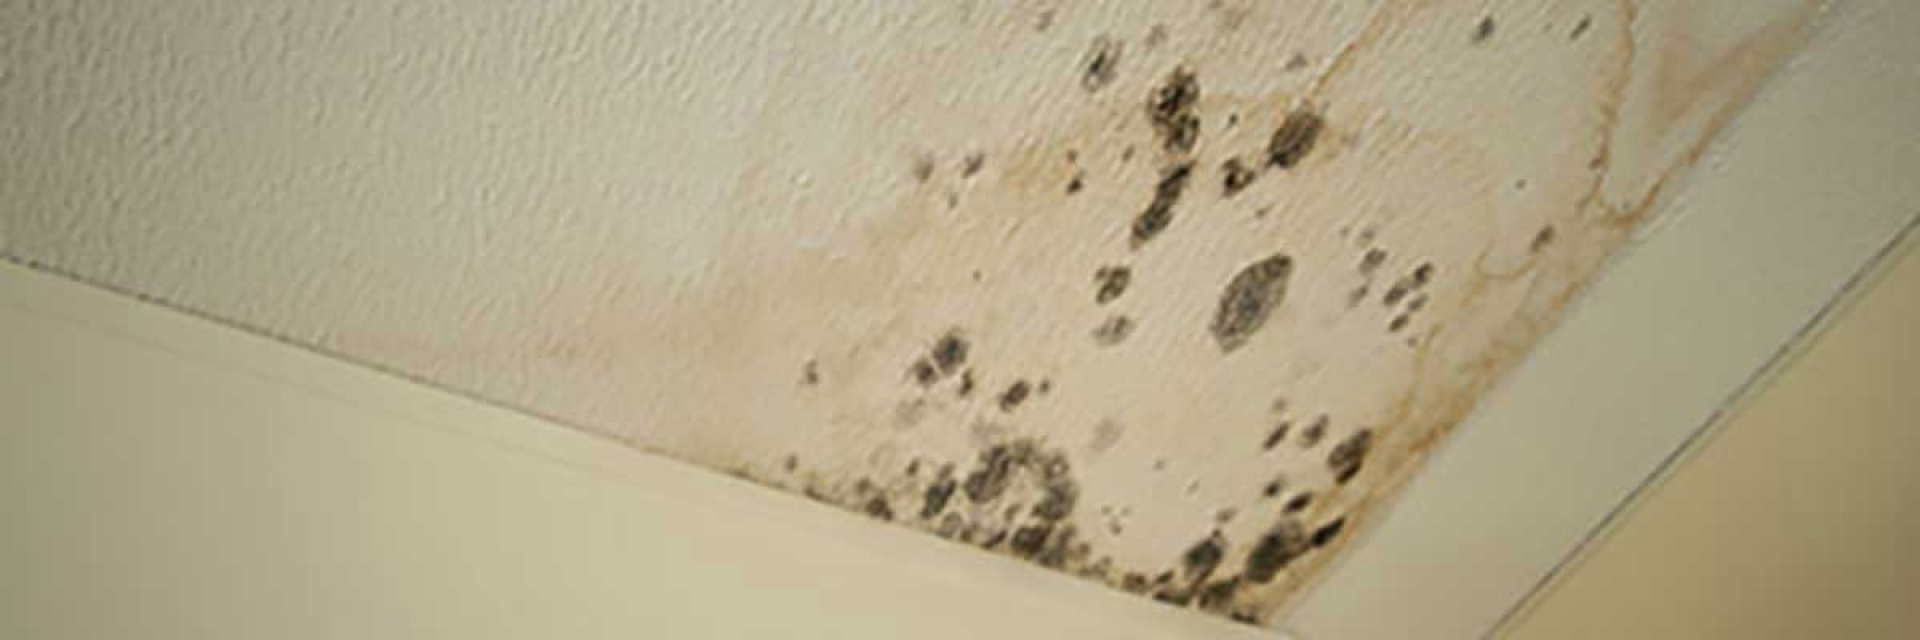 mold-on-ceiling